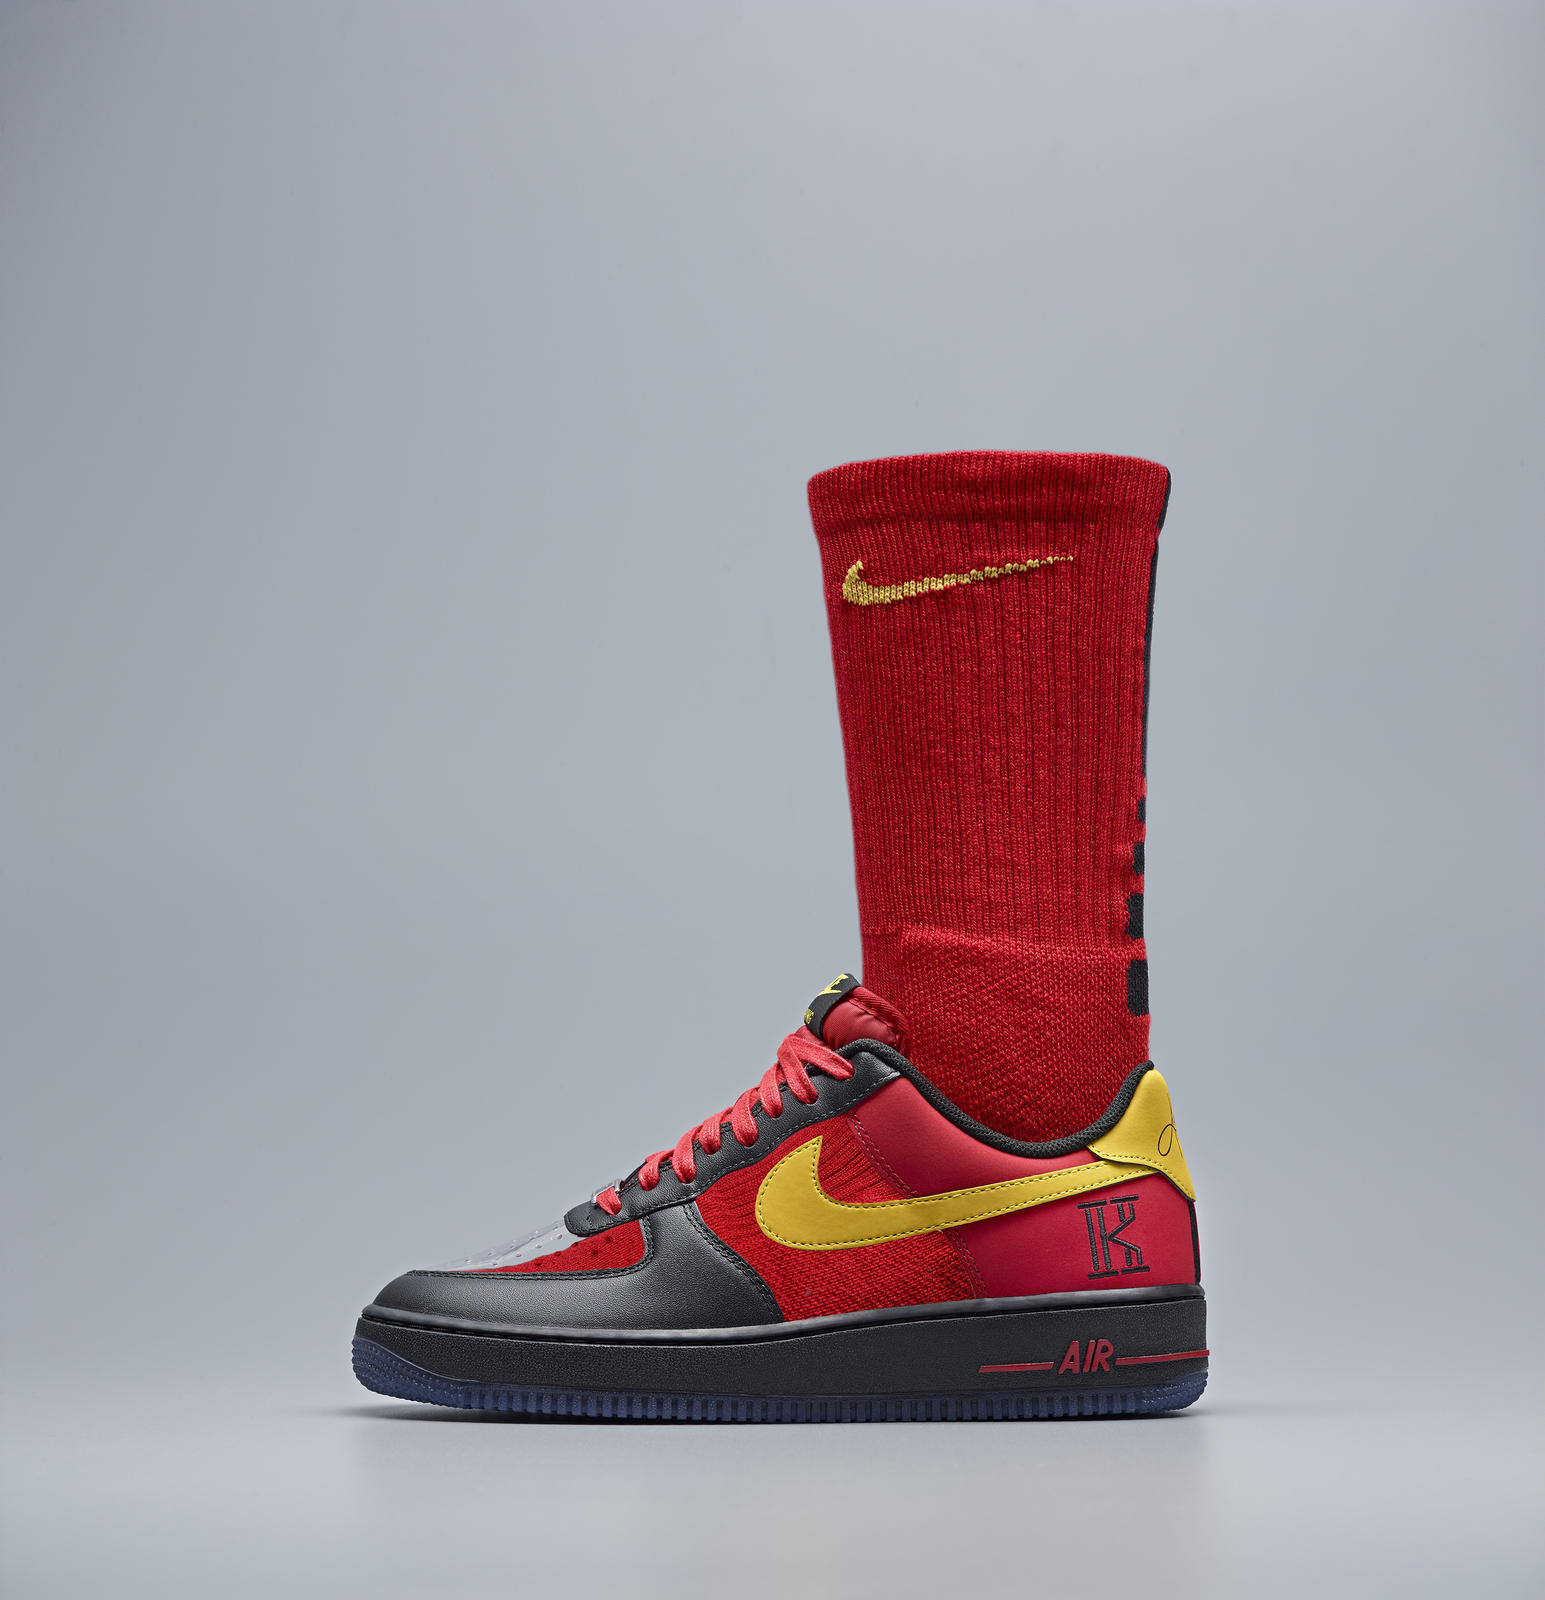 new products ddc95 5b286 Nike Kyrie AF1 RED BLK LAT SOCK. Nike Kyrie AF1 SLV BLU LAT SOCK